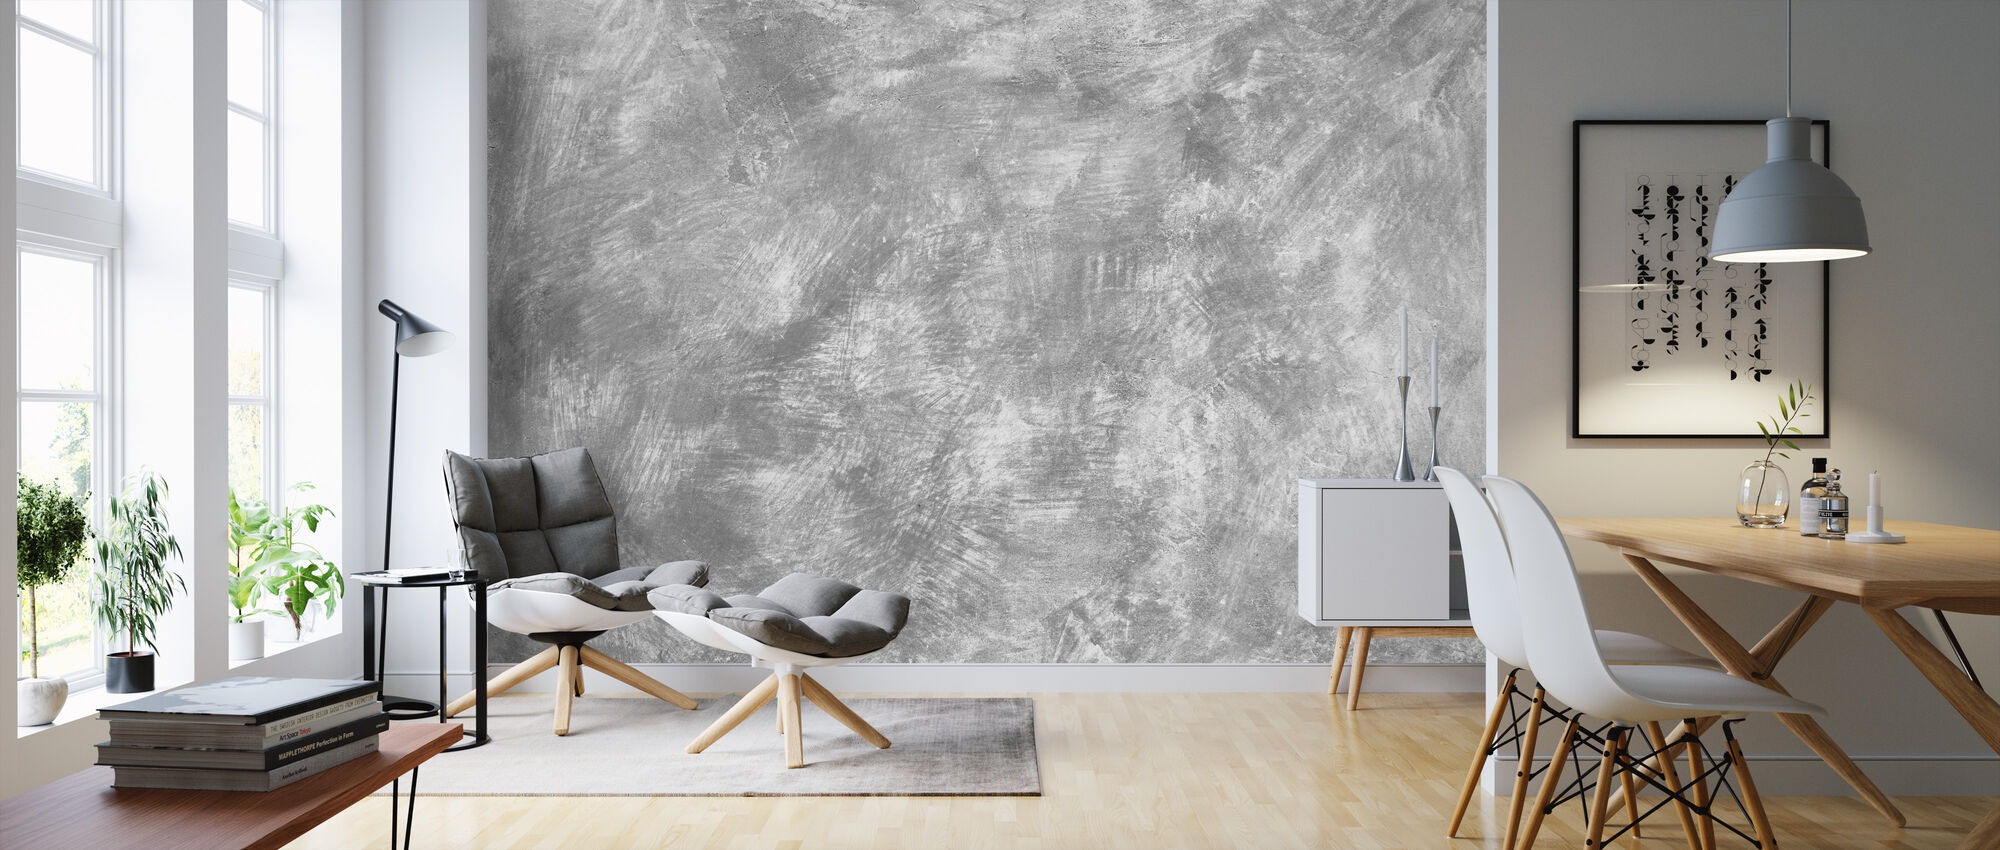 Weathered Concrete Wall - Wallpaper - Living Room